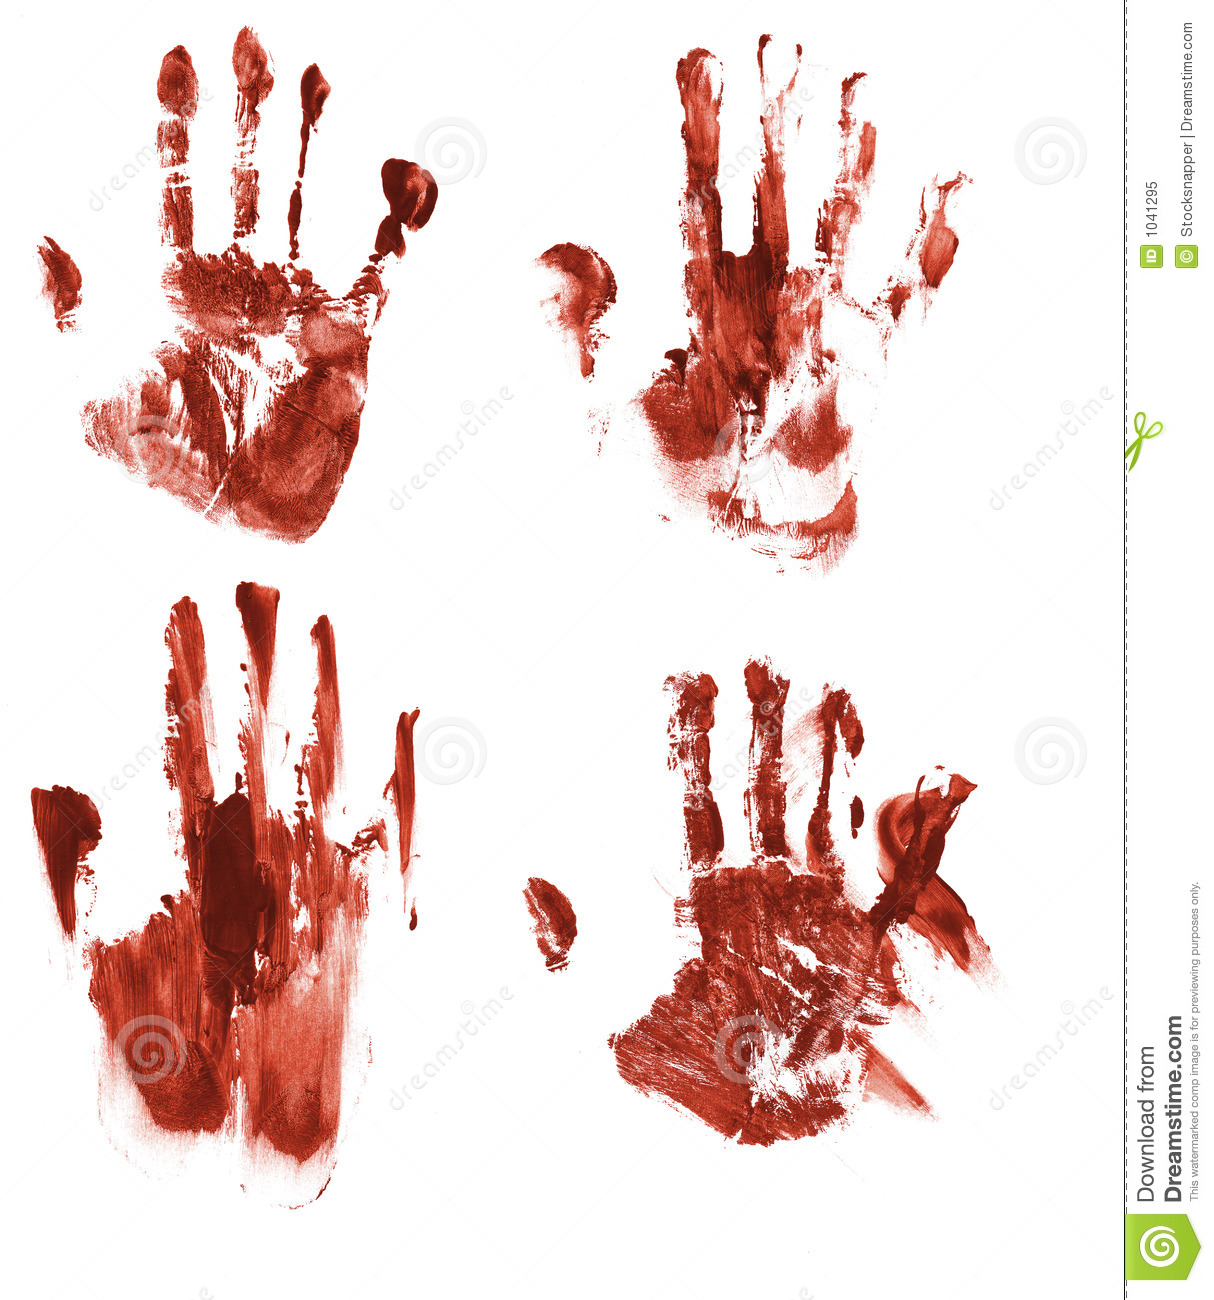 Bloody handprints stock illustration  Illustration of horror